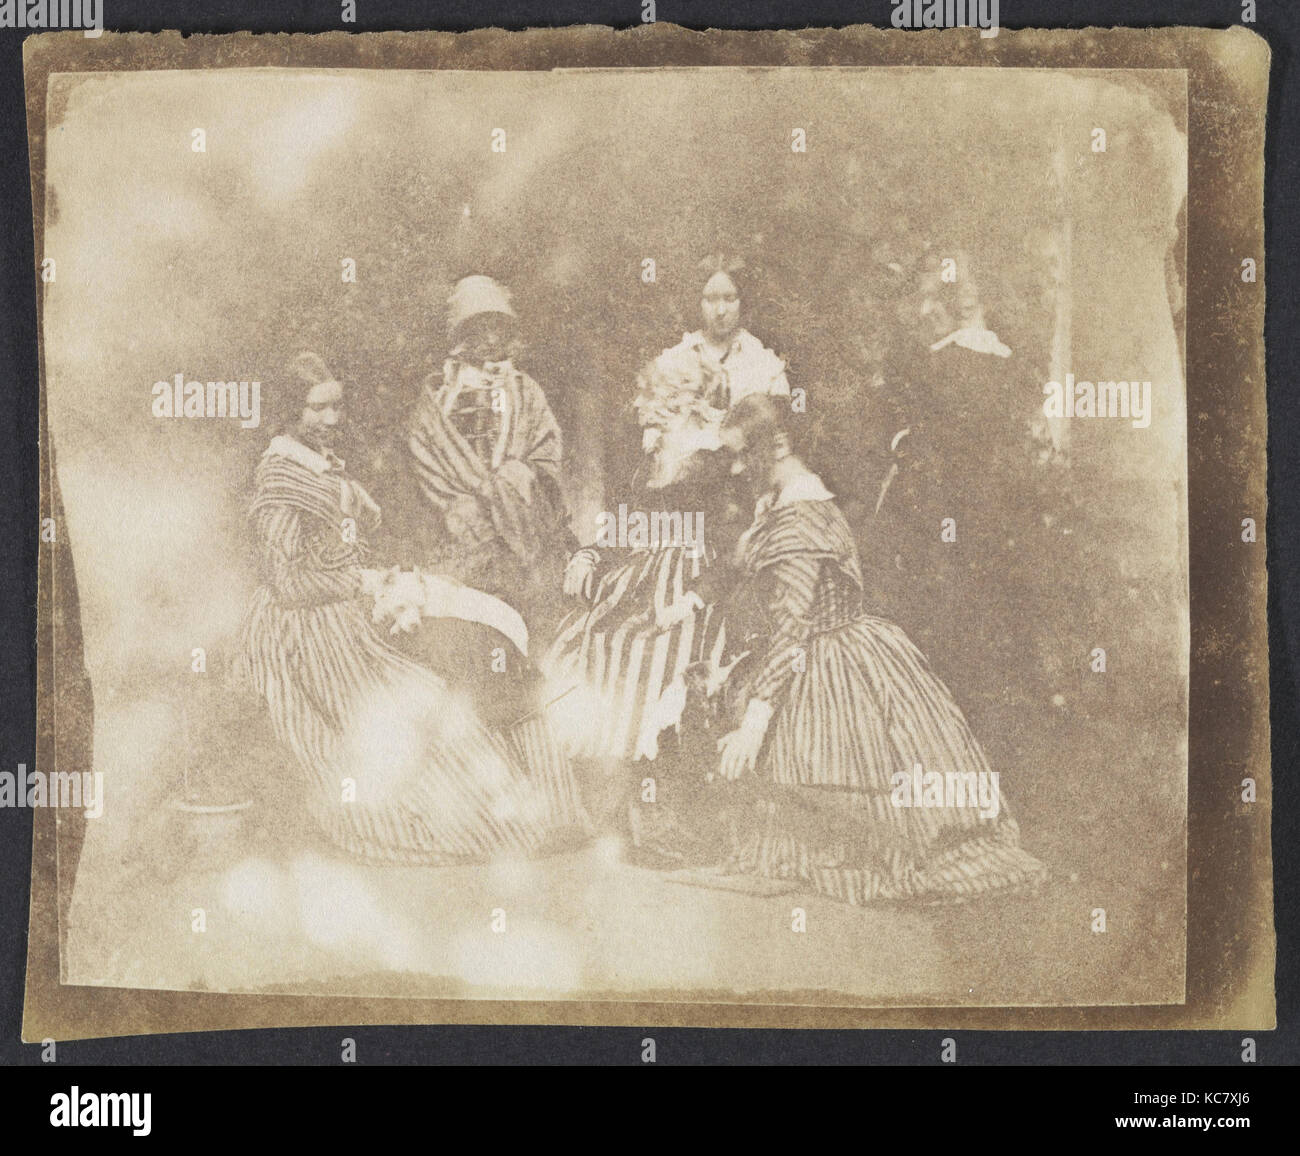 34. Artistical Groups in Various Poses, Calvert Richard Jones, ca. 1845 - Stock Image